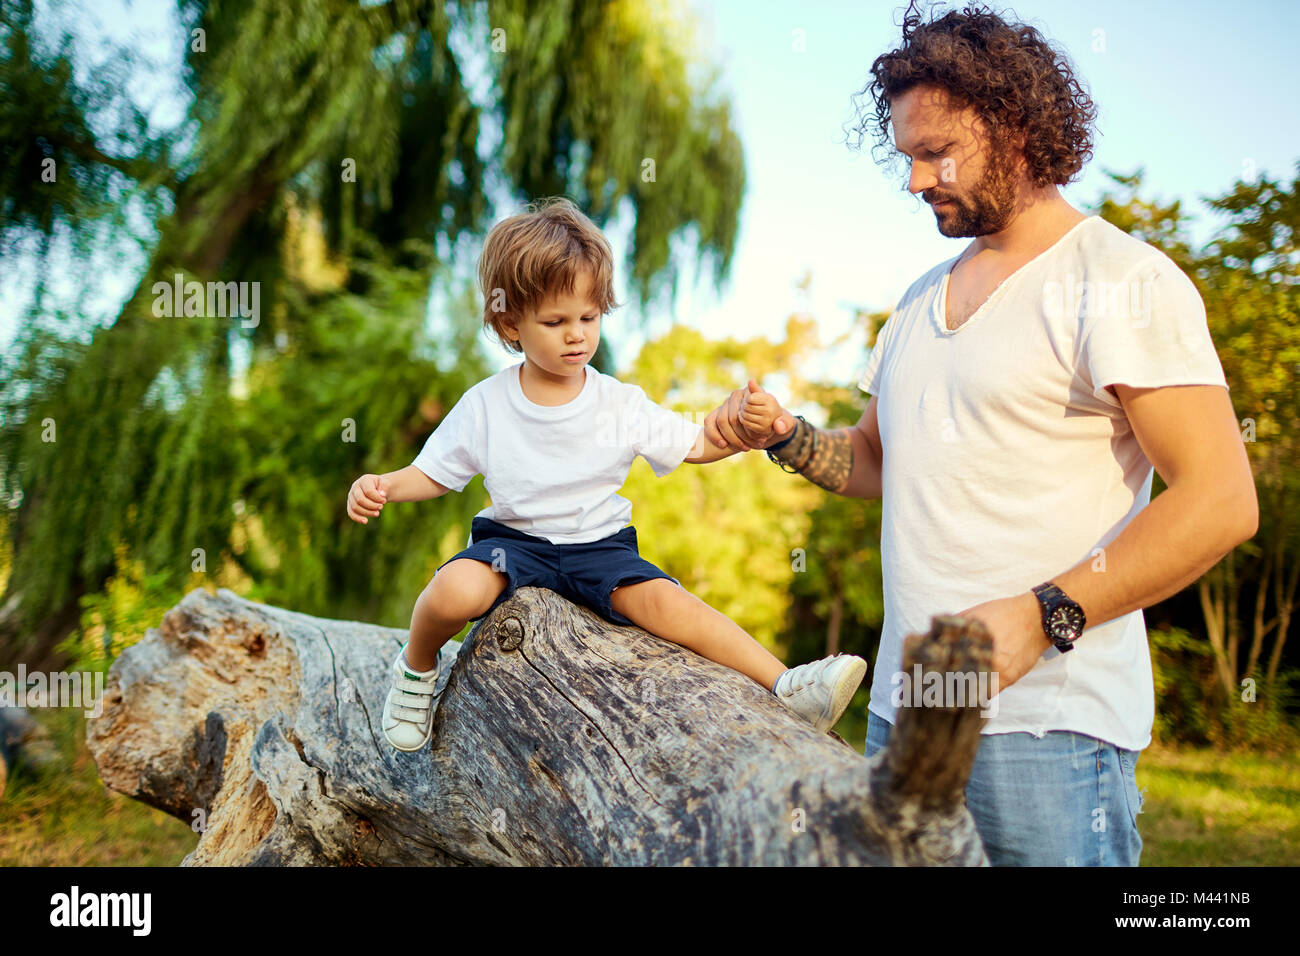 Father playing with his son in the park.  - Stock Image